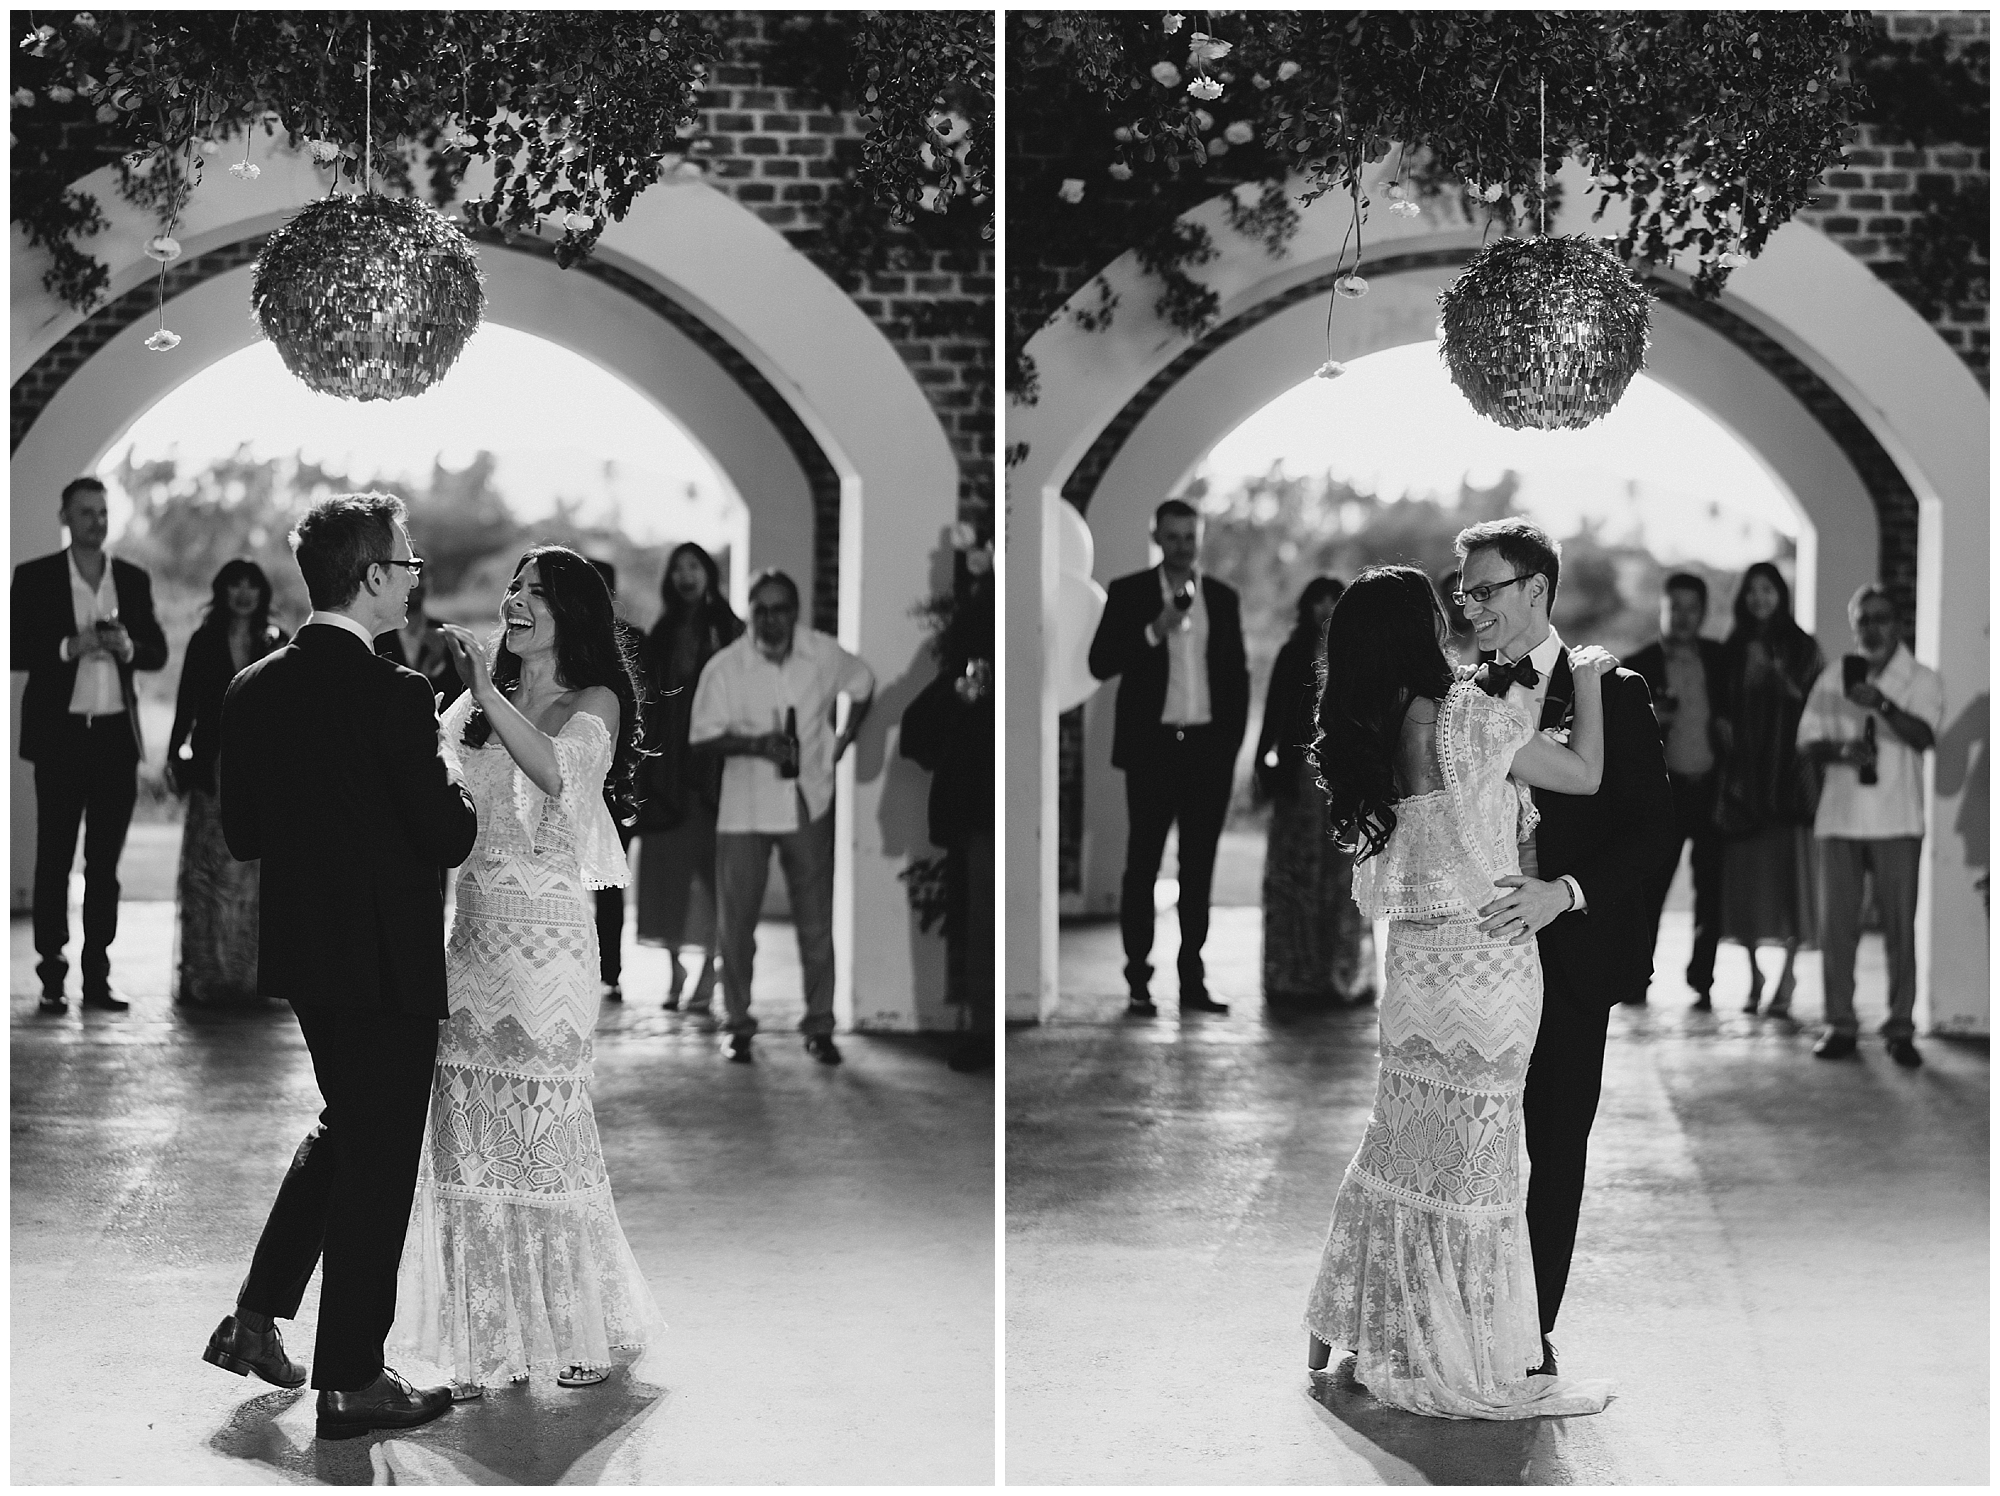 The first of many dances to come for this bride & groom at this beautiful Cabo wedding